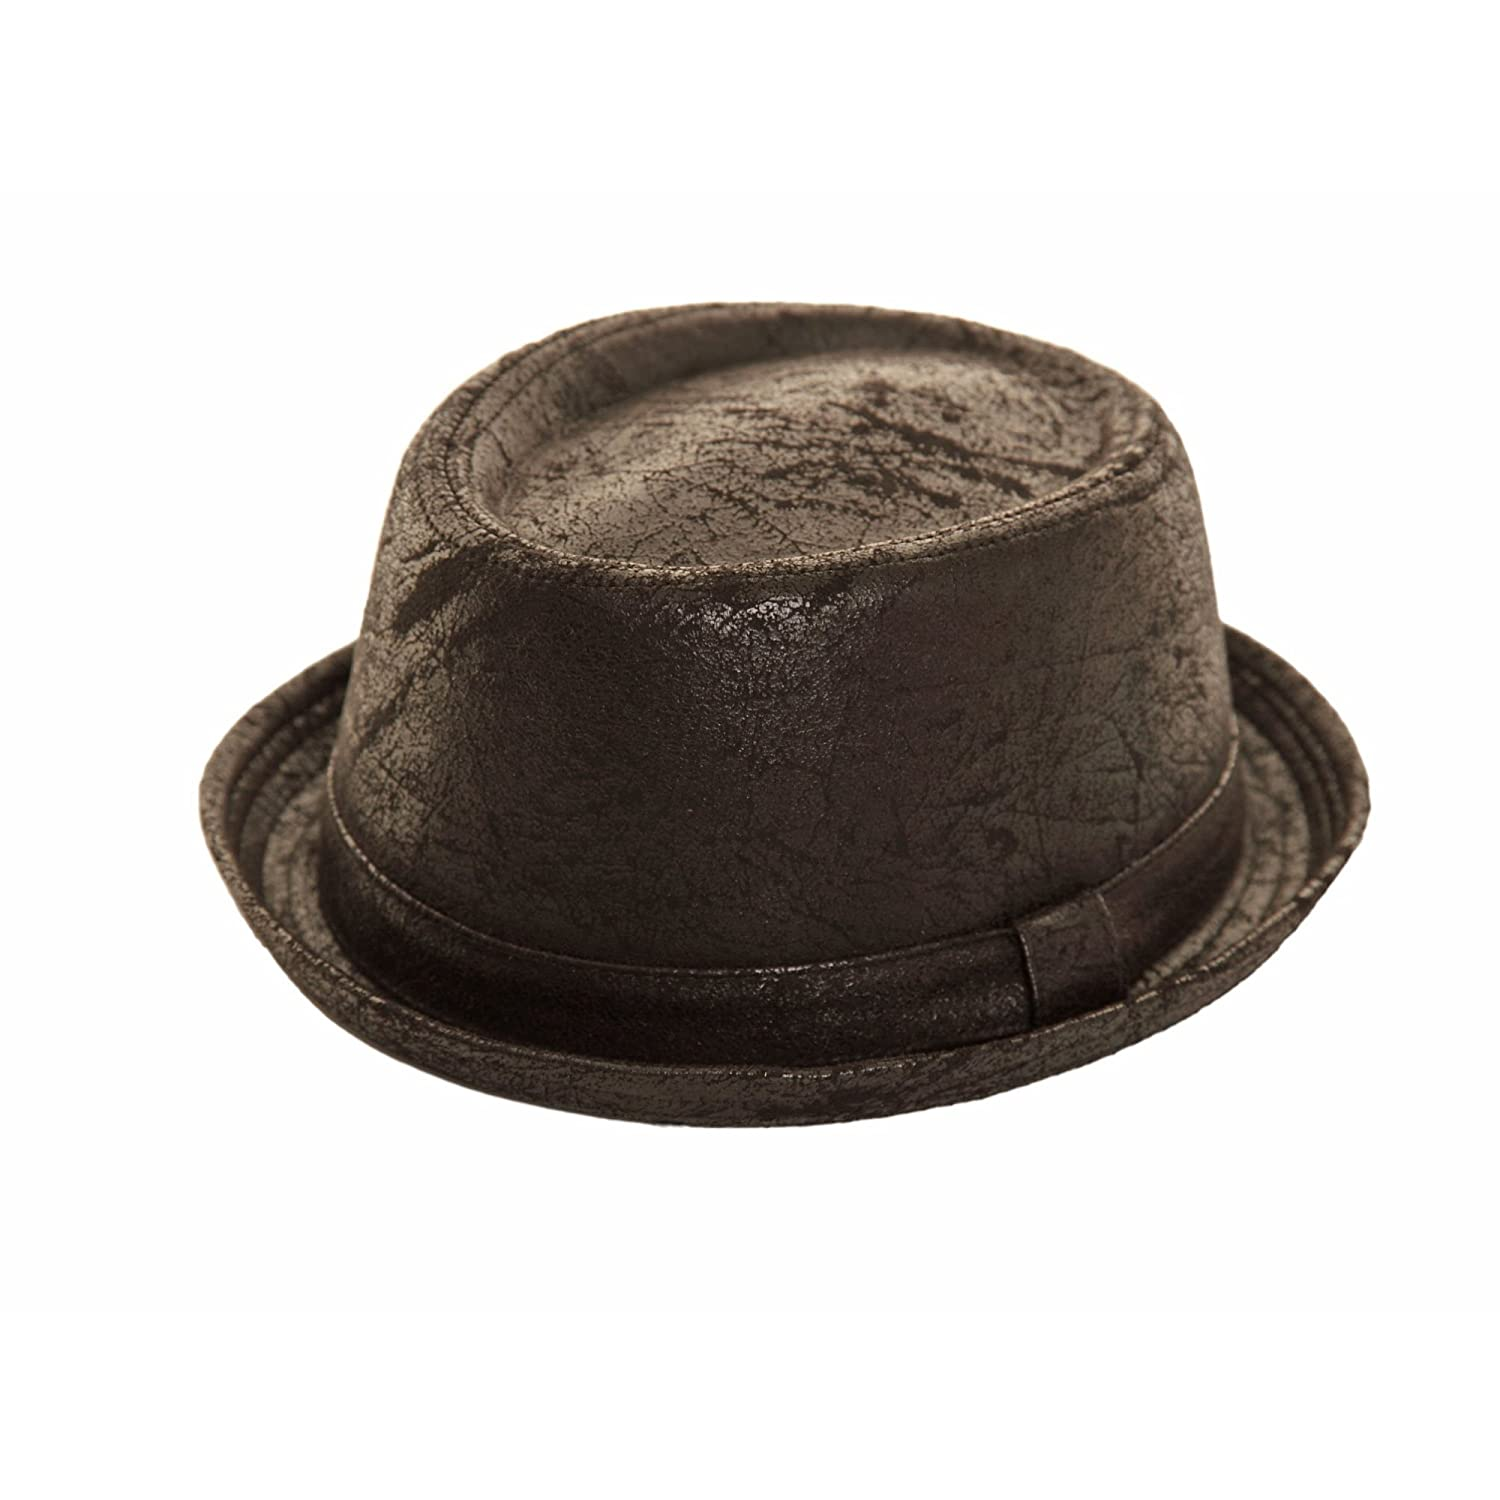 Hawkins Unisex Porkpie trilby hat black cracked leather worn vintage look NEW